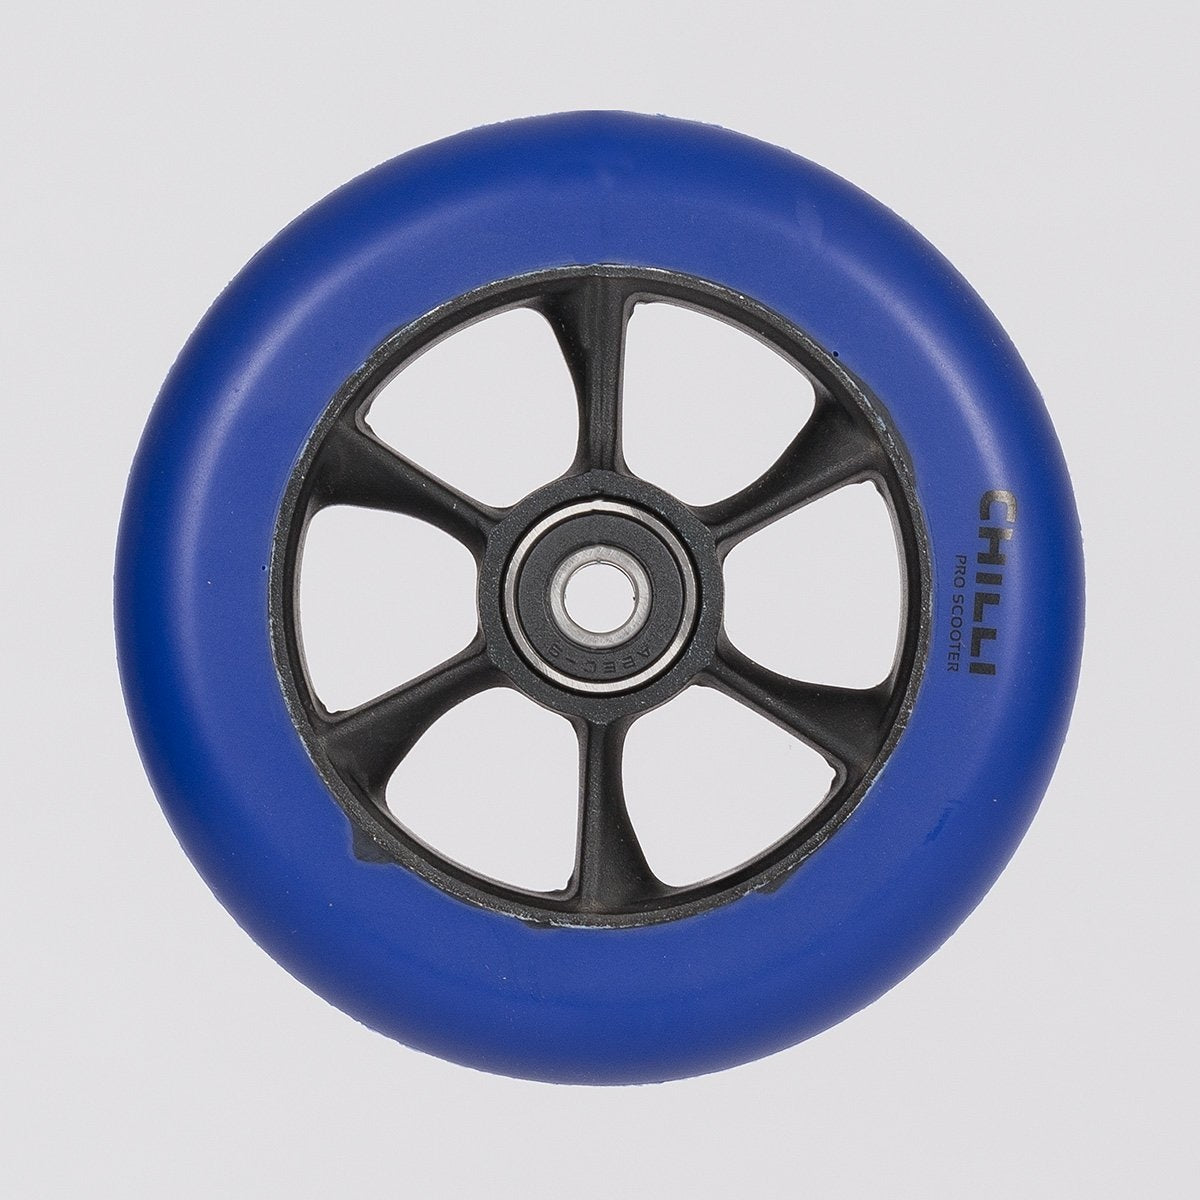 Chilli Pro Turbo Wheel 110mm Blue/Black - Scooter